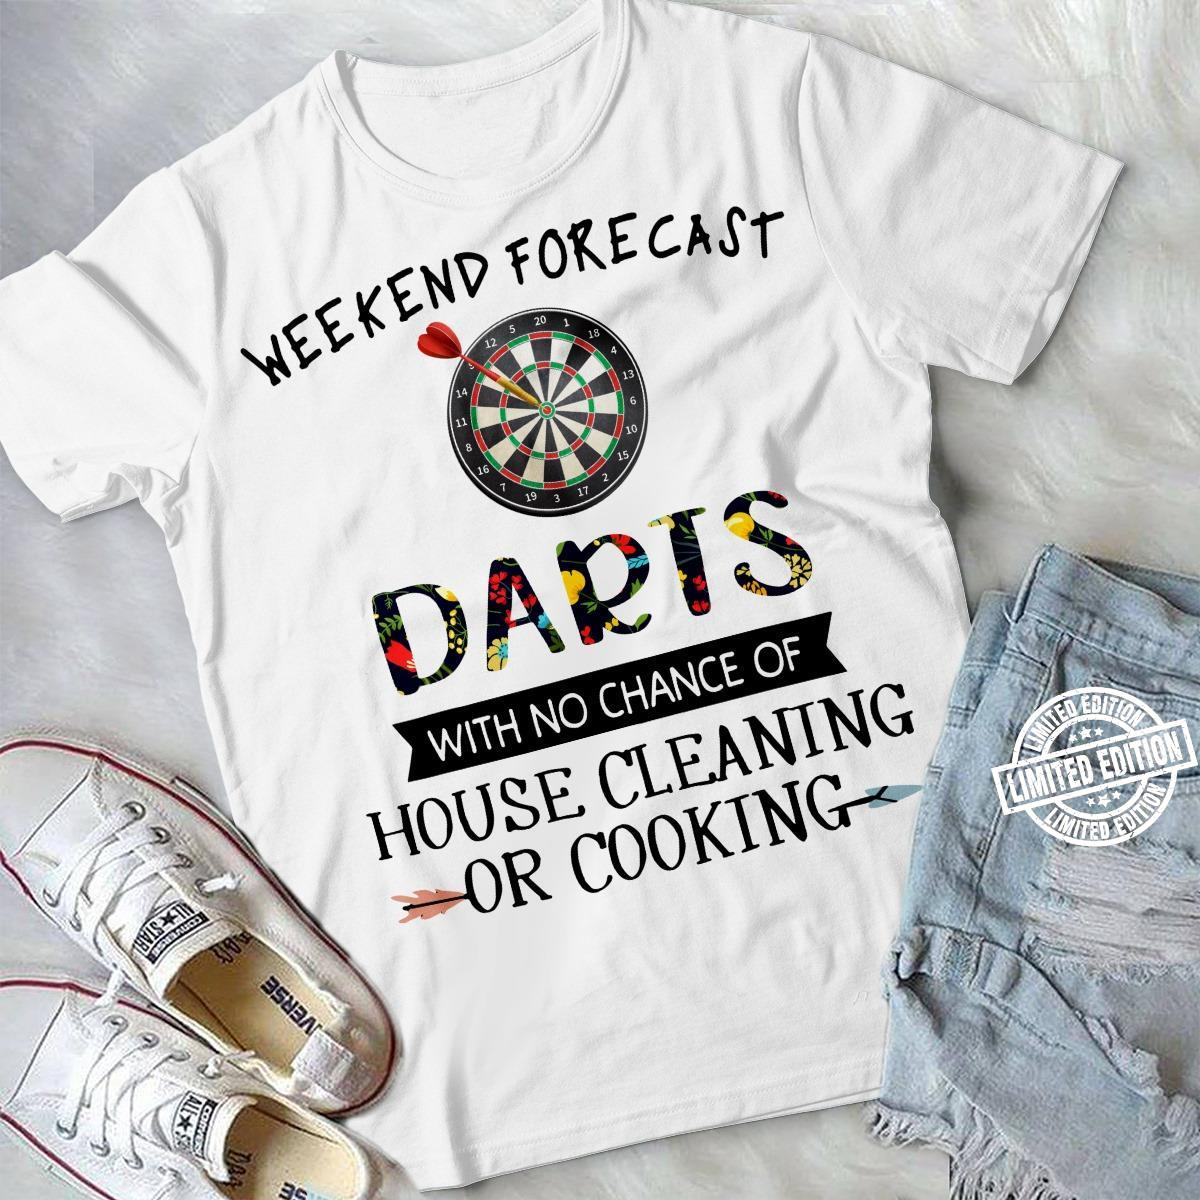 Weekend forecast darts with no chance of house cleaning of cooking shirt